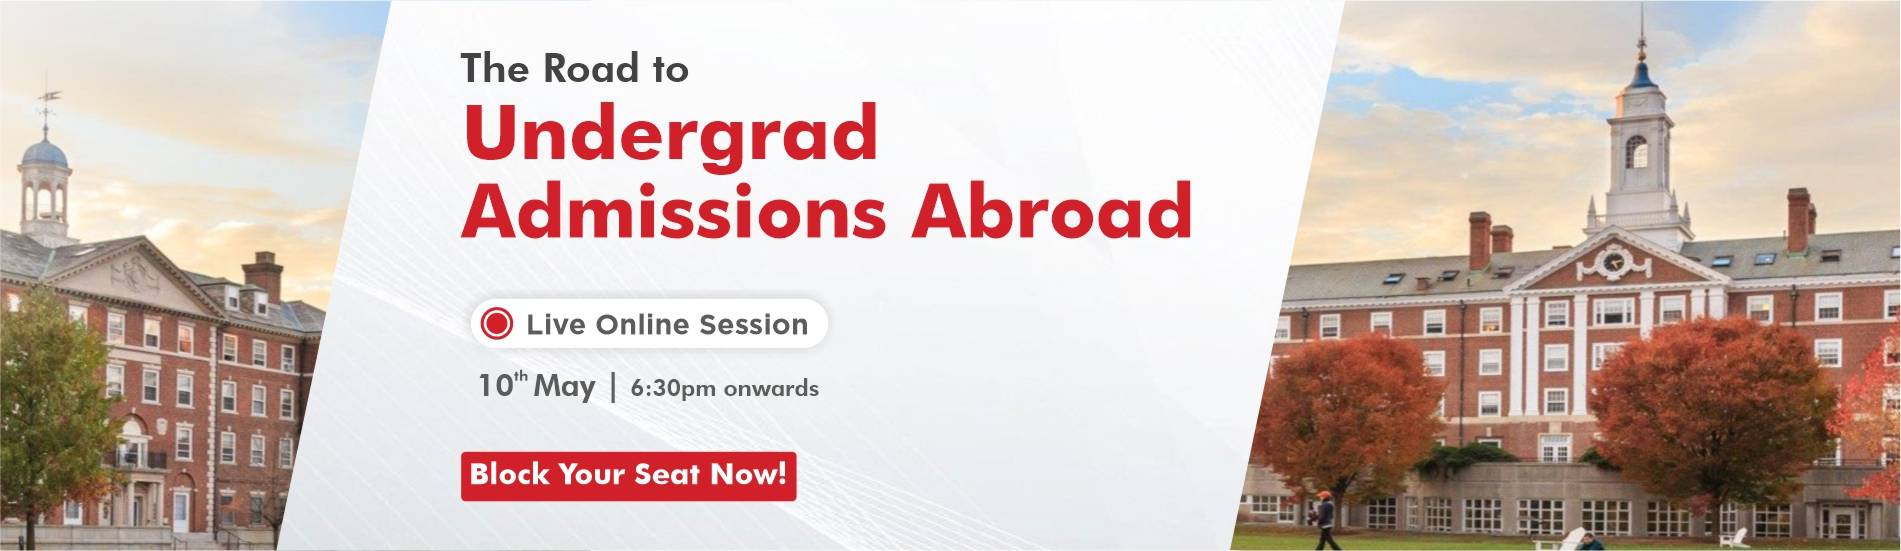 The Road to Undergrad Admissions Abroad